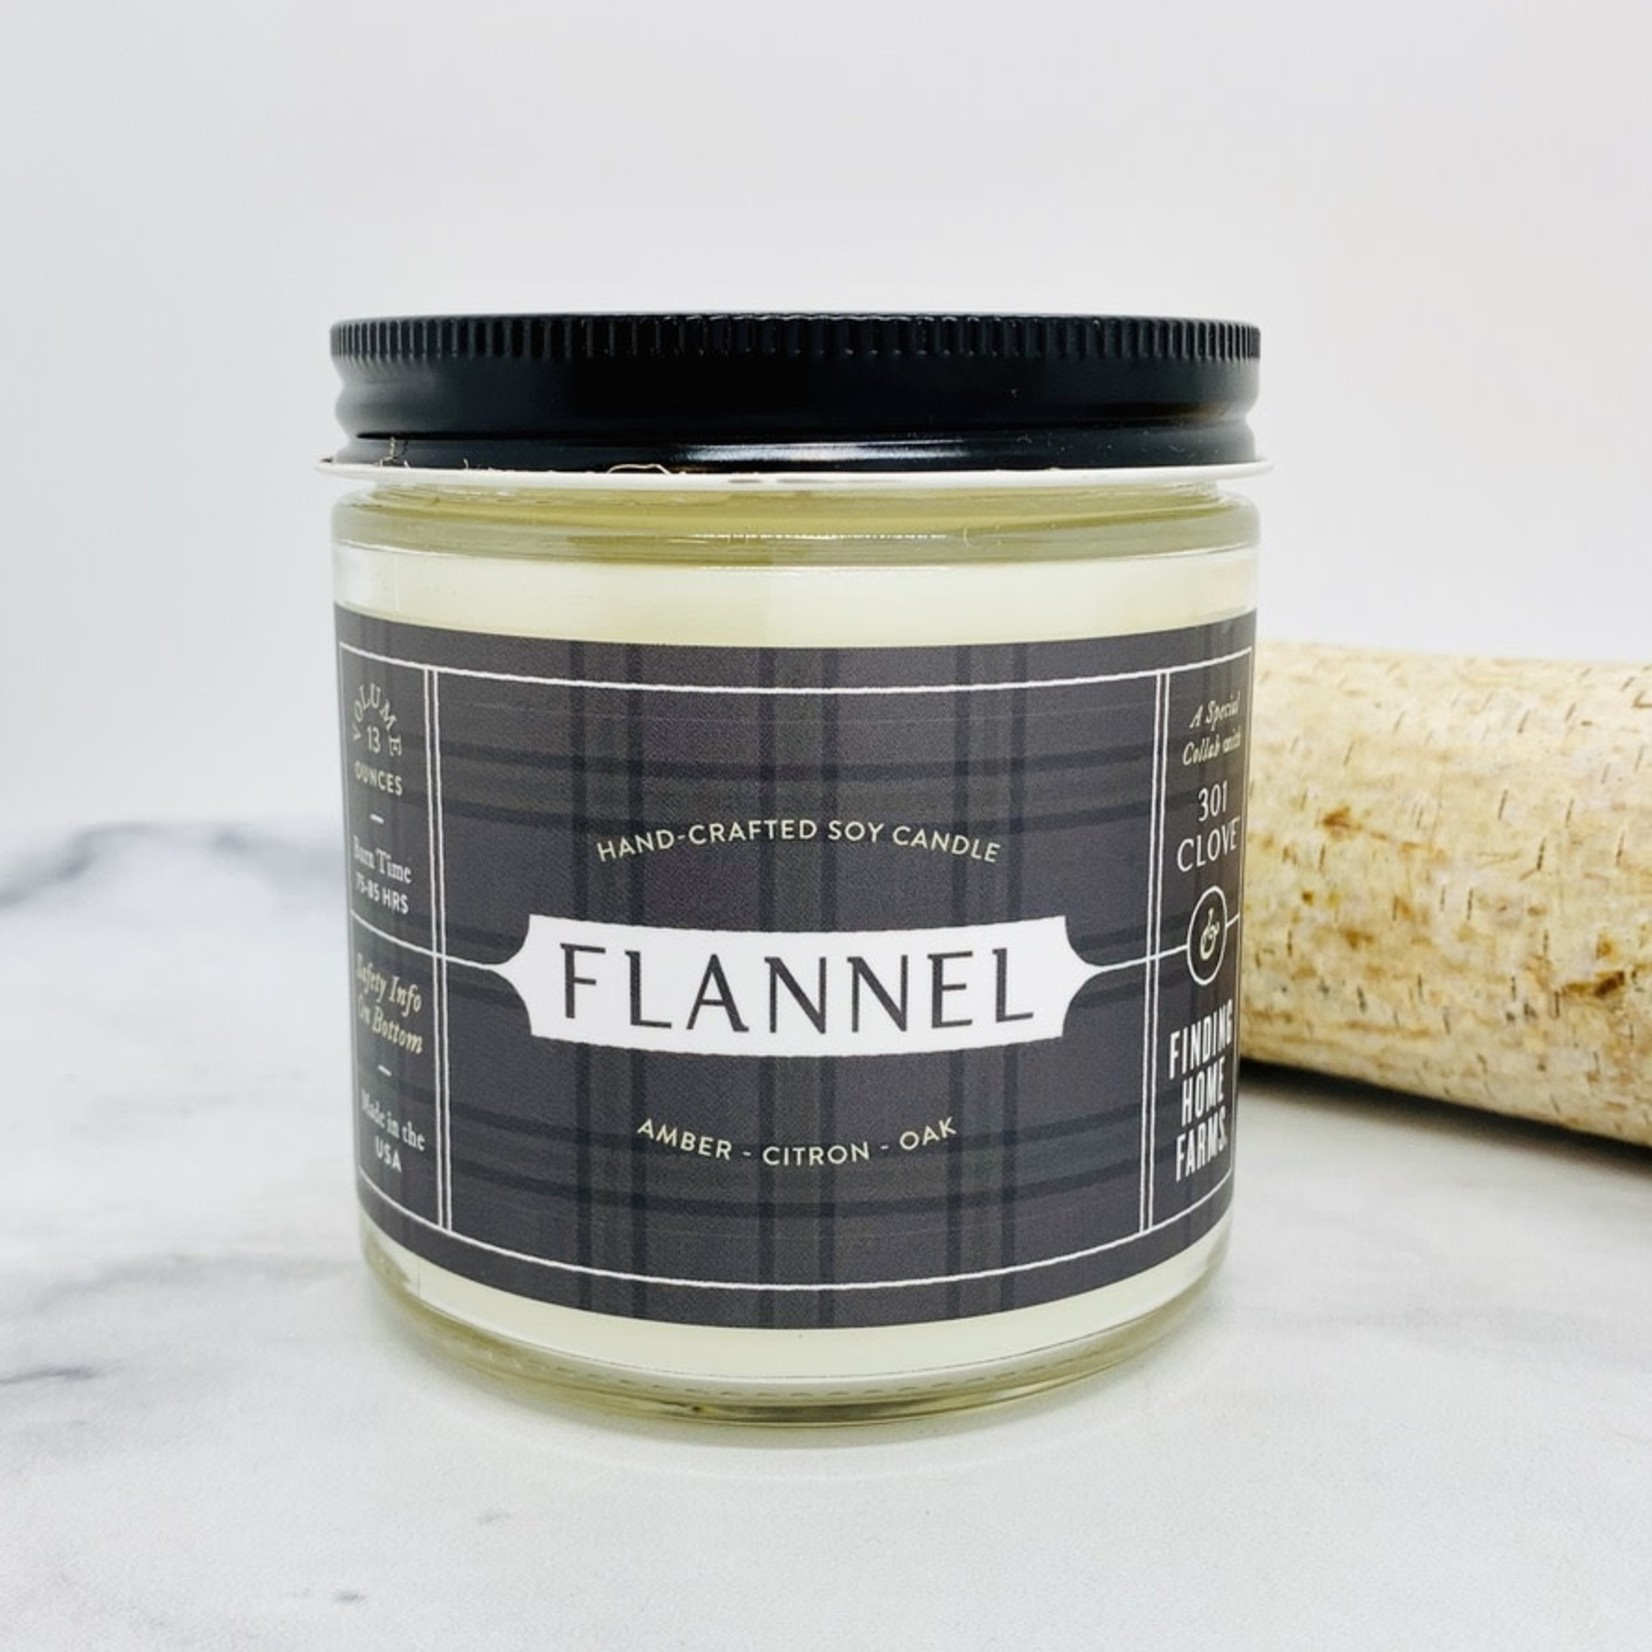 Flannel Candle 13 oz